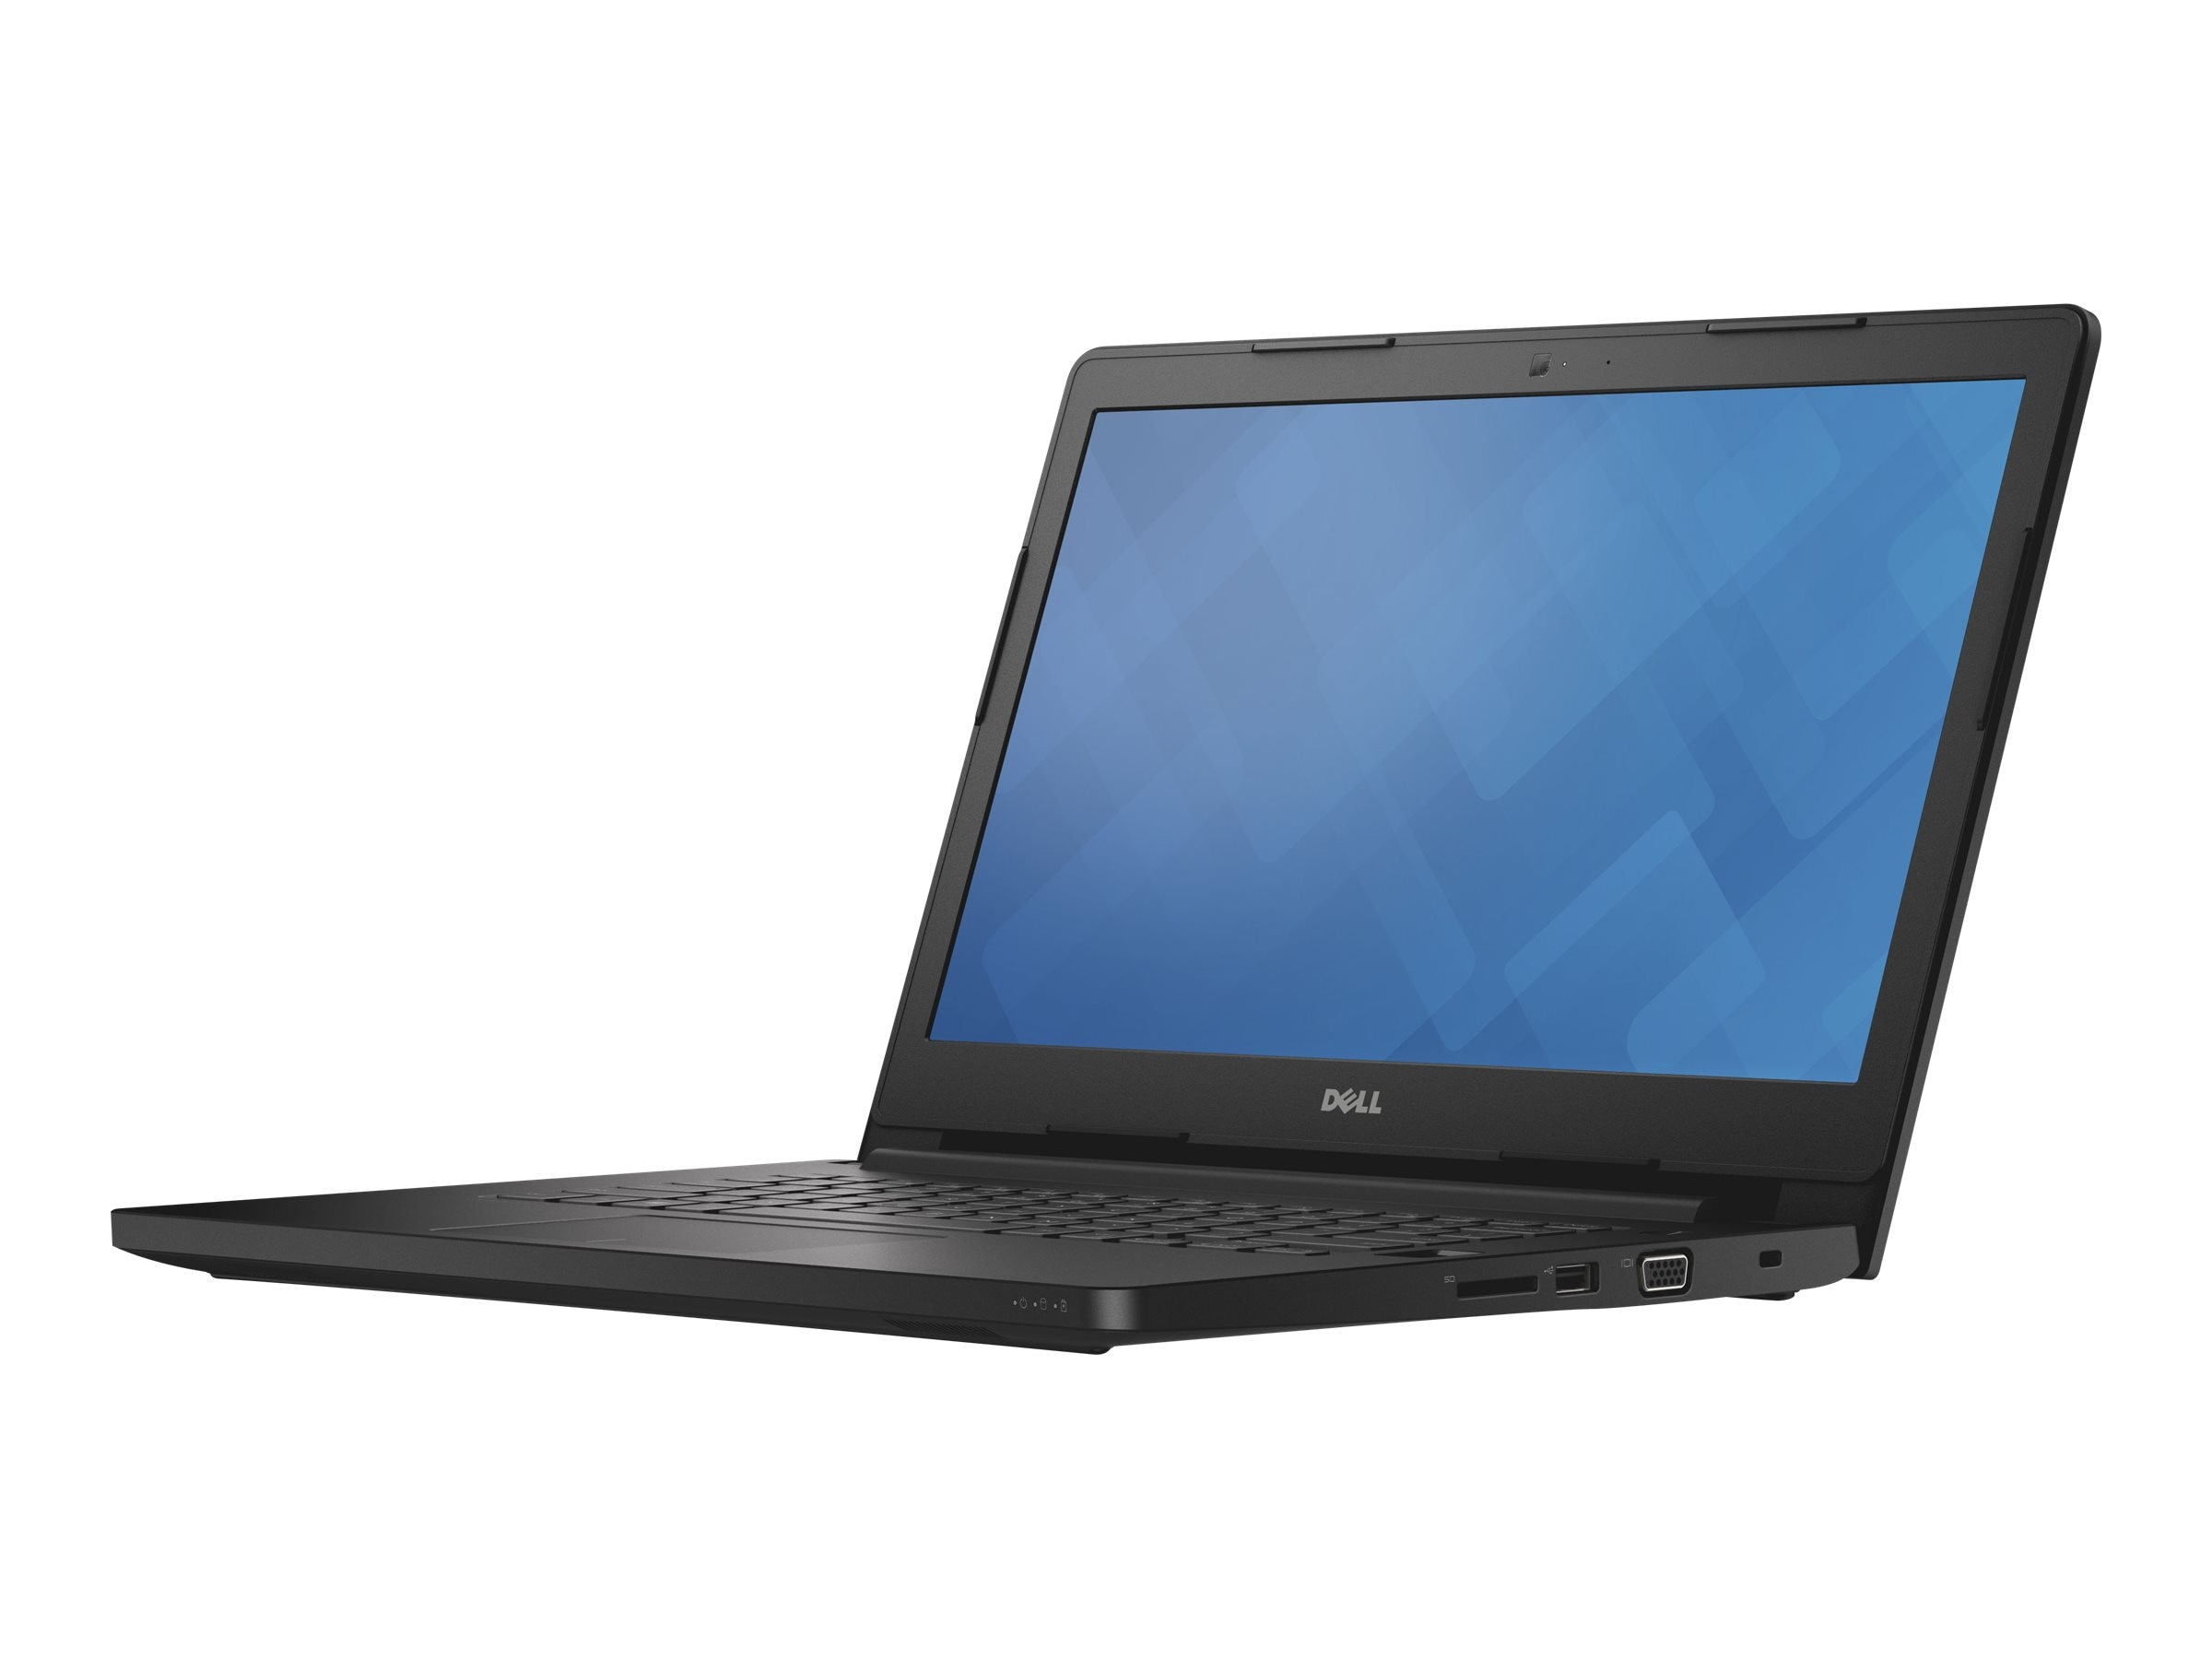 Dell Latitude 3470 Core i3-6100U 2.3GHz 4GB 500GB agn BT 4C 14 HD W10P64